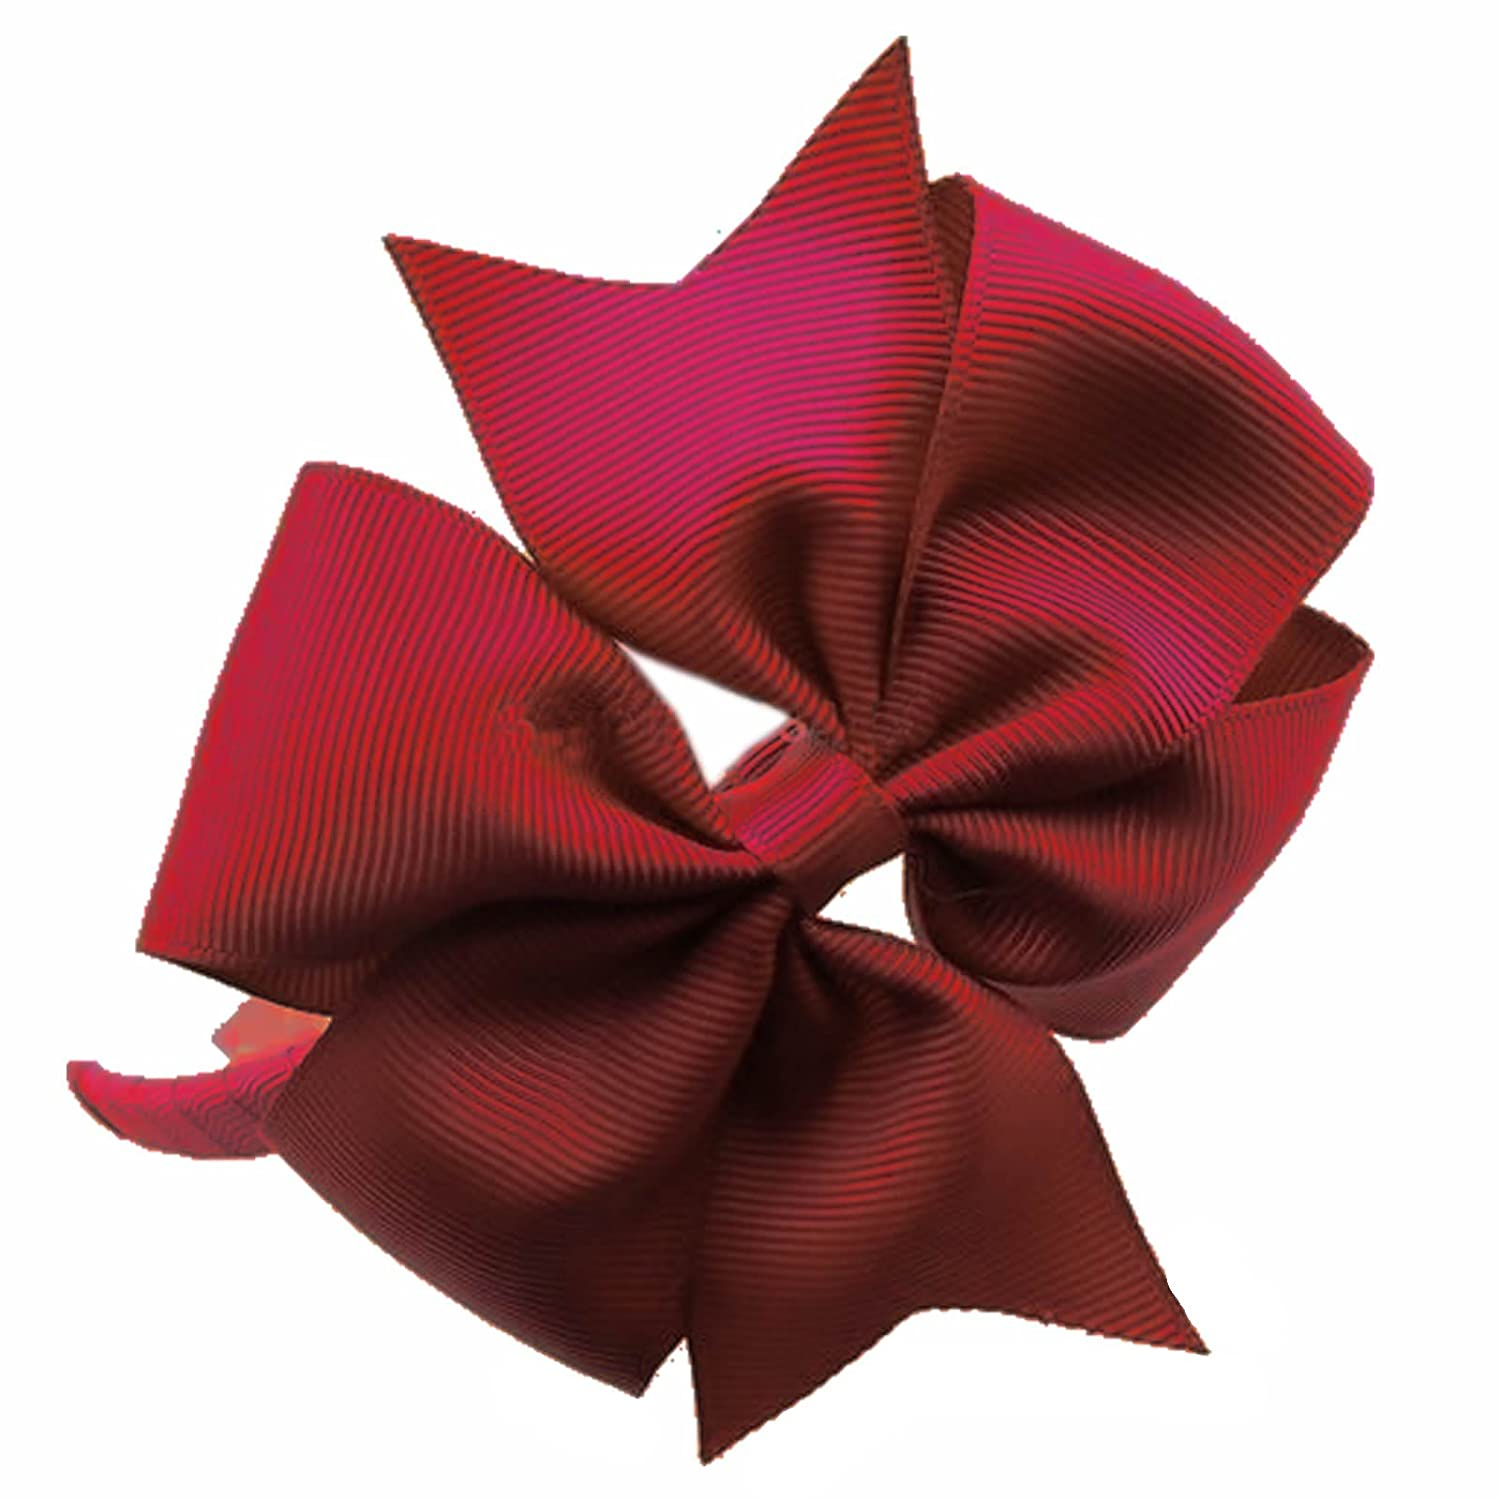 1 x Large Flat Fan Ribbon Bow Head Alice Band Hair Band School Uniform HB013